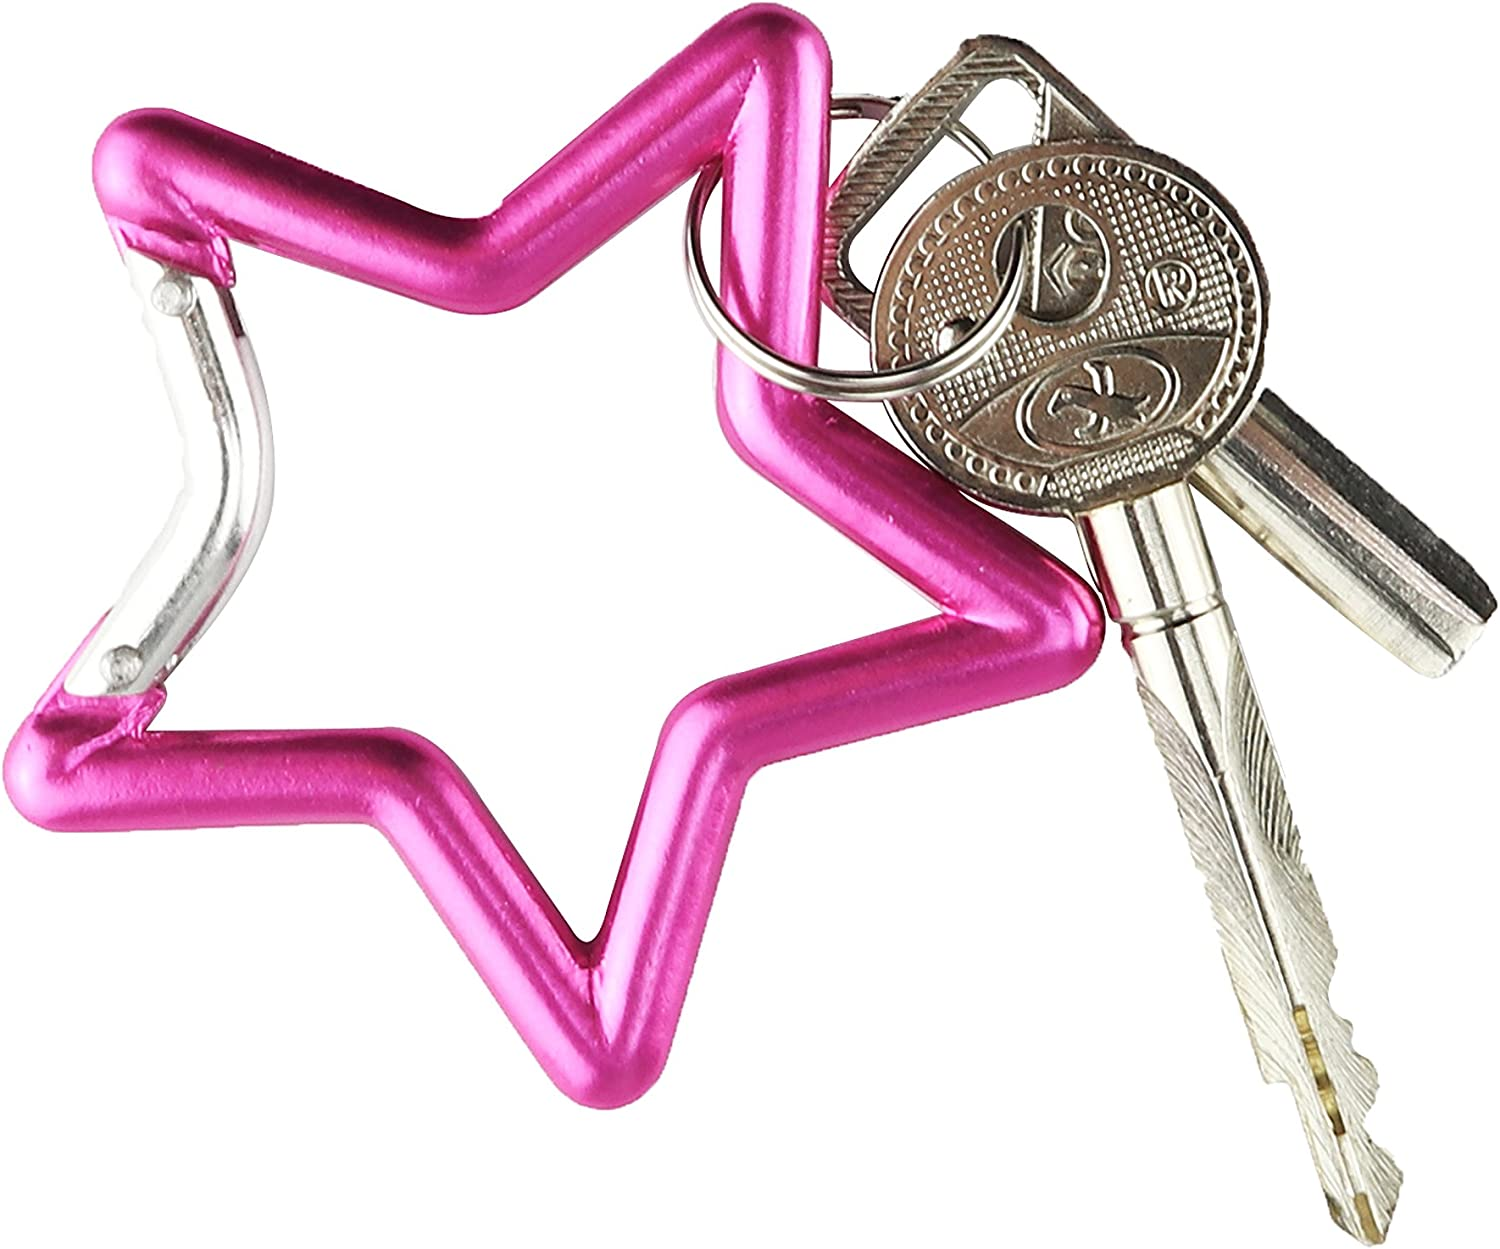 Temlum Aluminum Alloy Star Shape Carabiner 2//2.8 Inches Clip Spring Snap Hook Keyring Colorful Carabiners for Camping Traveling Hiking Keychains Outdoor